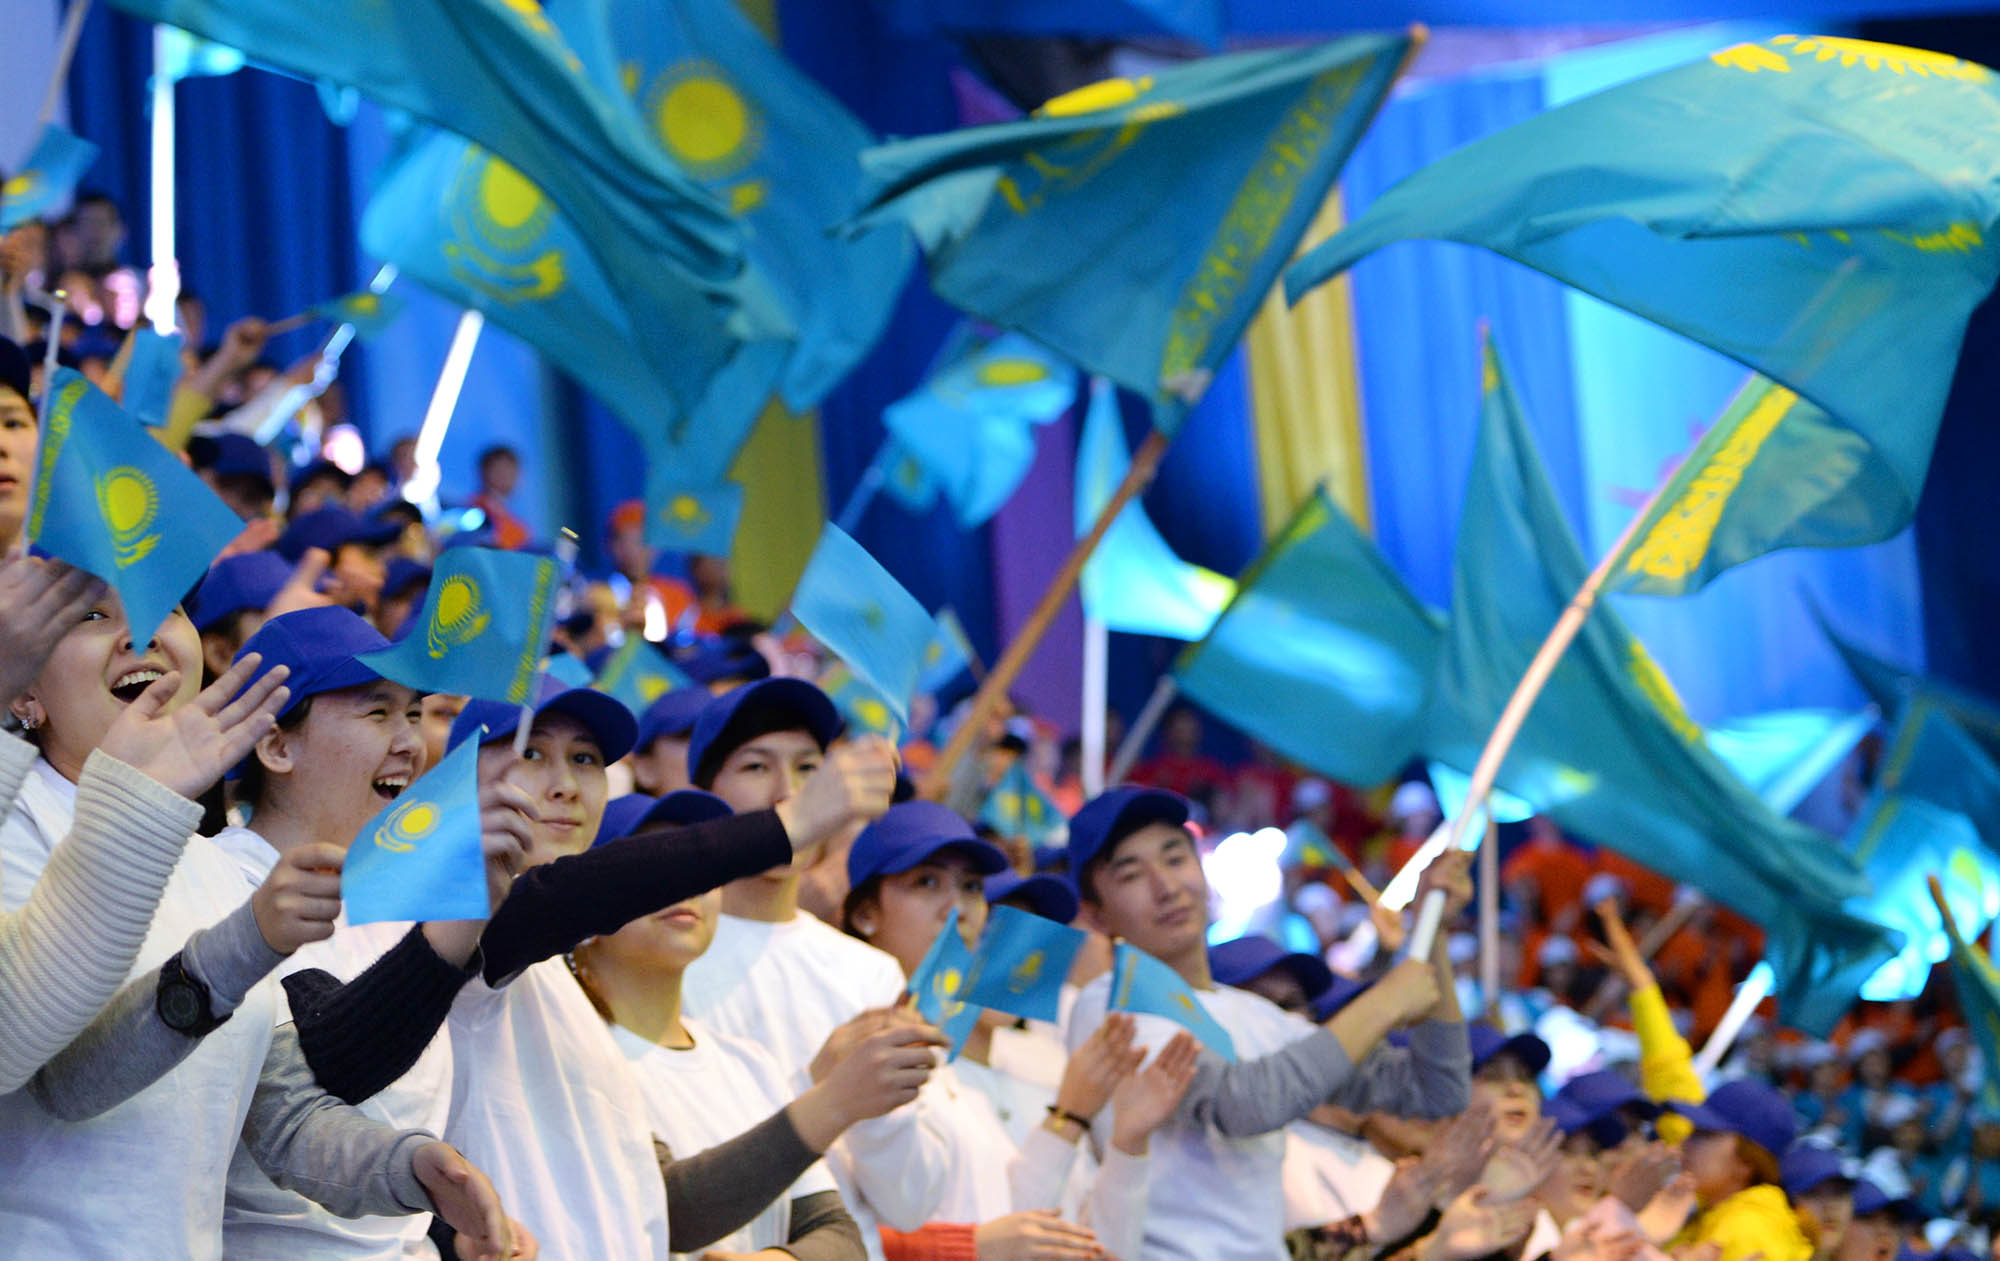 Kazakhstan is a bright evidence of the peaceful coexistence of people of different cultures